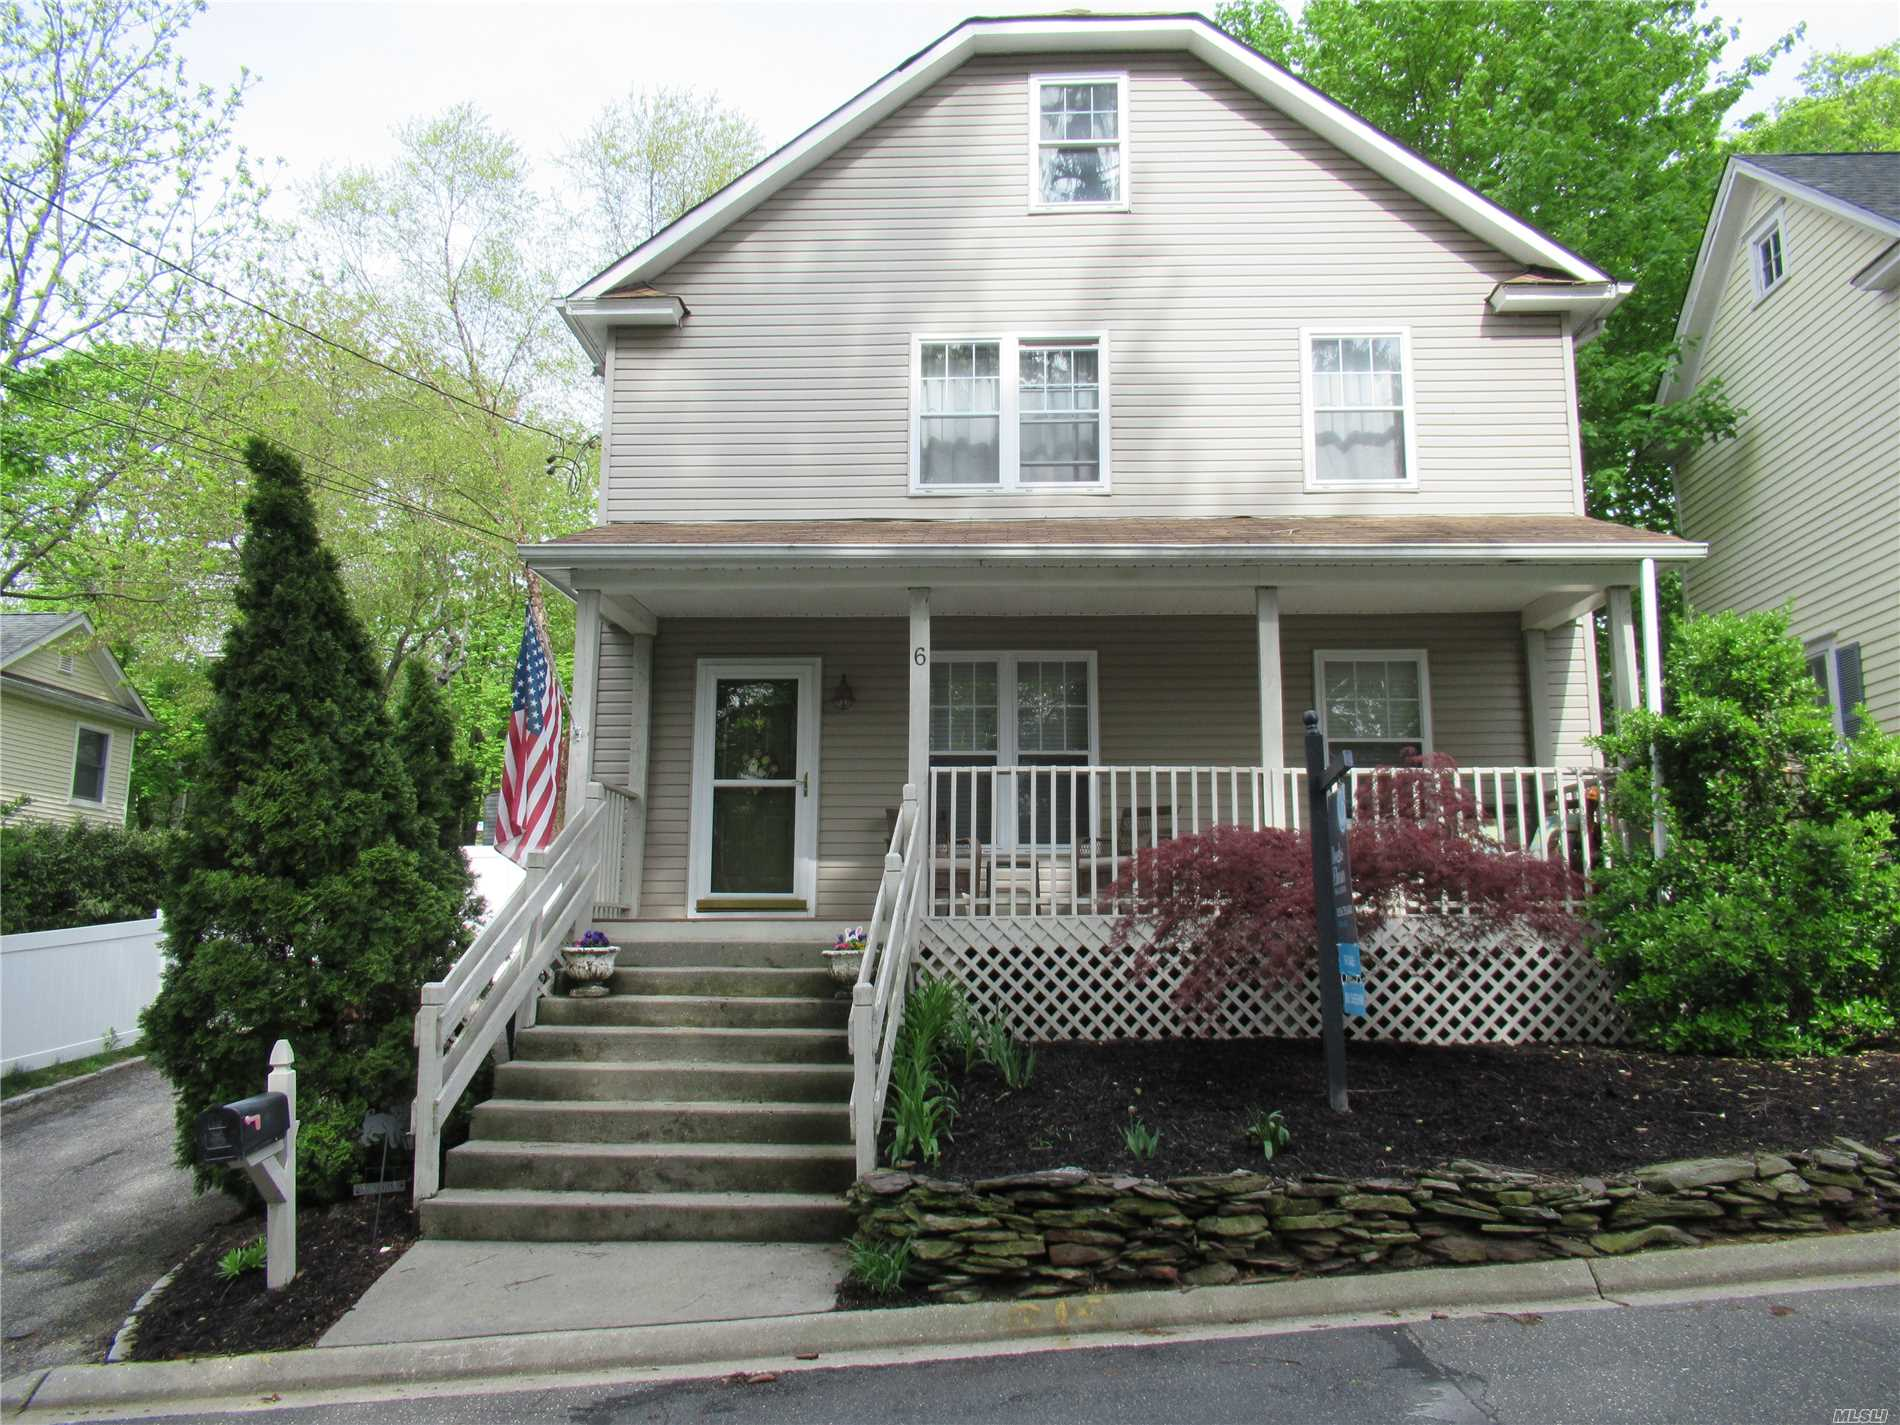 Taxes are currently being grieved. Beautifully maintained village colonial with open concept. sun-filled & spacious! Finished attic with bonus room. move in ready. Very large backyard! Award Winning Locust Valley School District. Close to train, village, golf & private beaches.